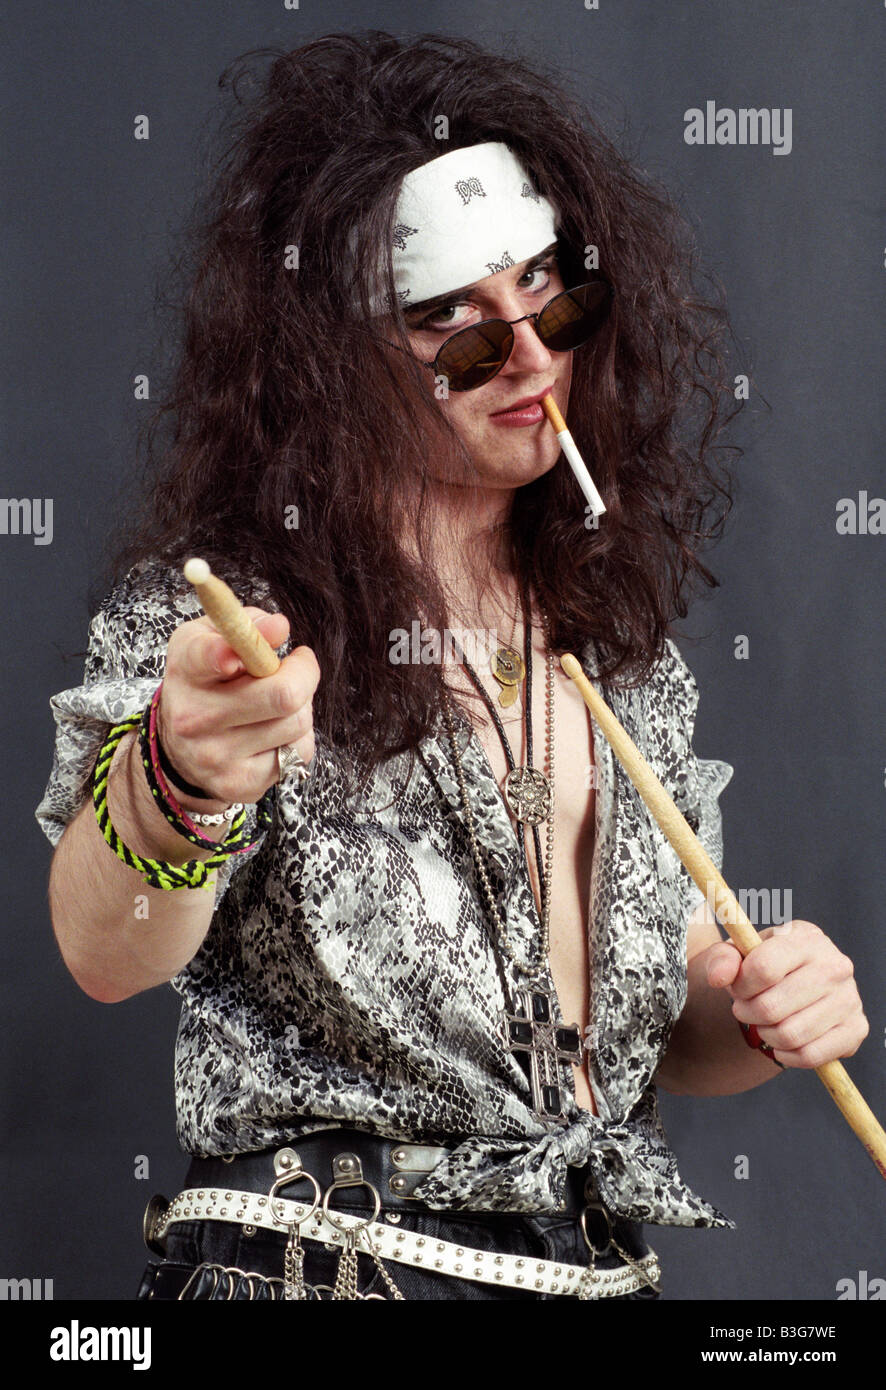 Model Dressed As Heavy Metal Music Star From The 1980s